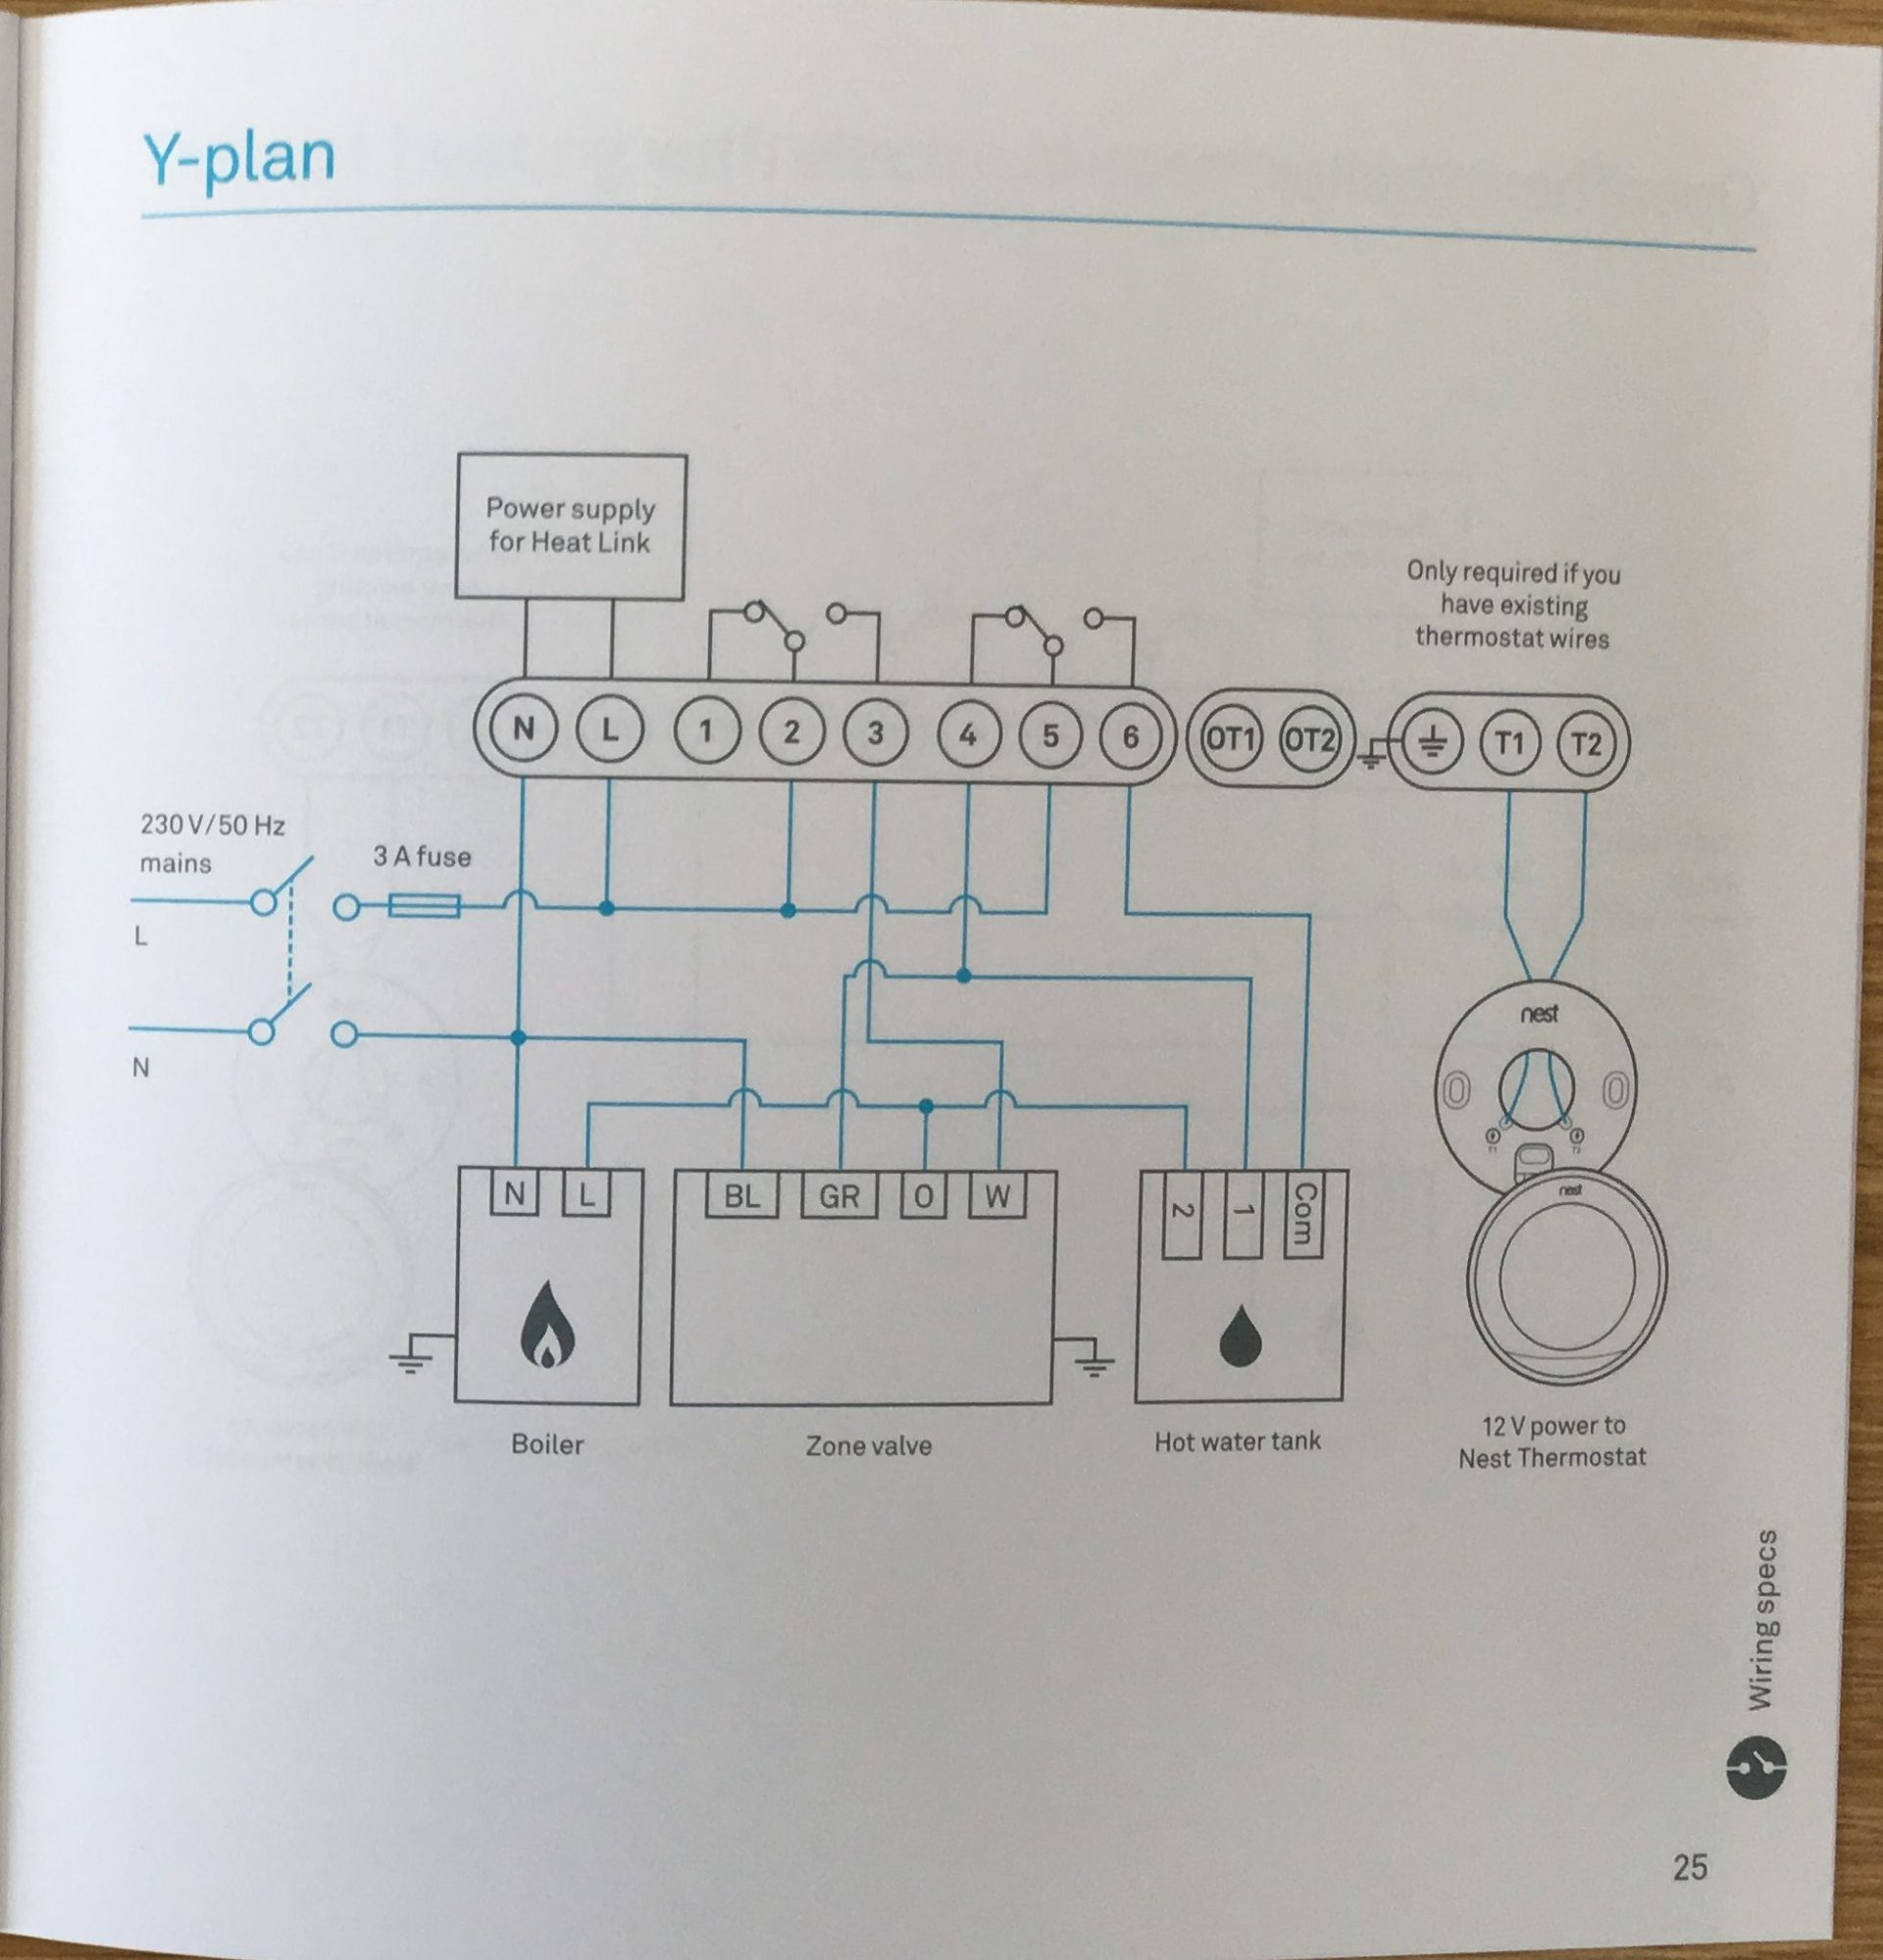 How To Install The Nest Learning Thermostat (3Rd Gen) In A Y-Plan - Digital Thermostat Wiring Diagram Nest